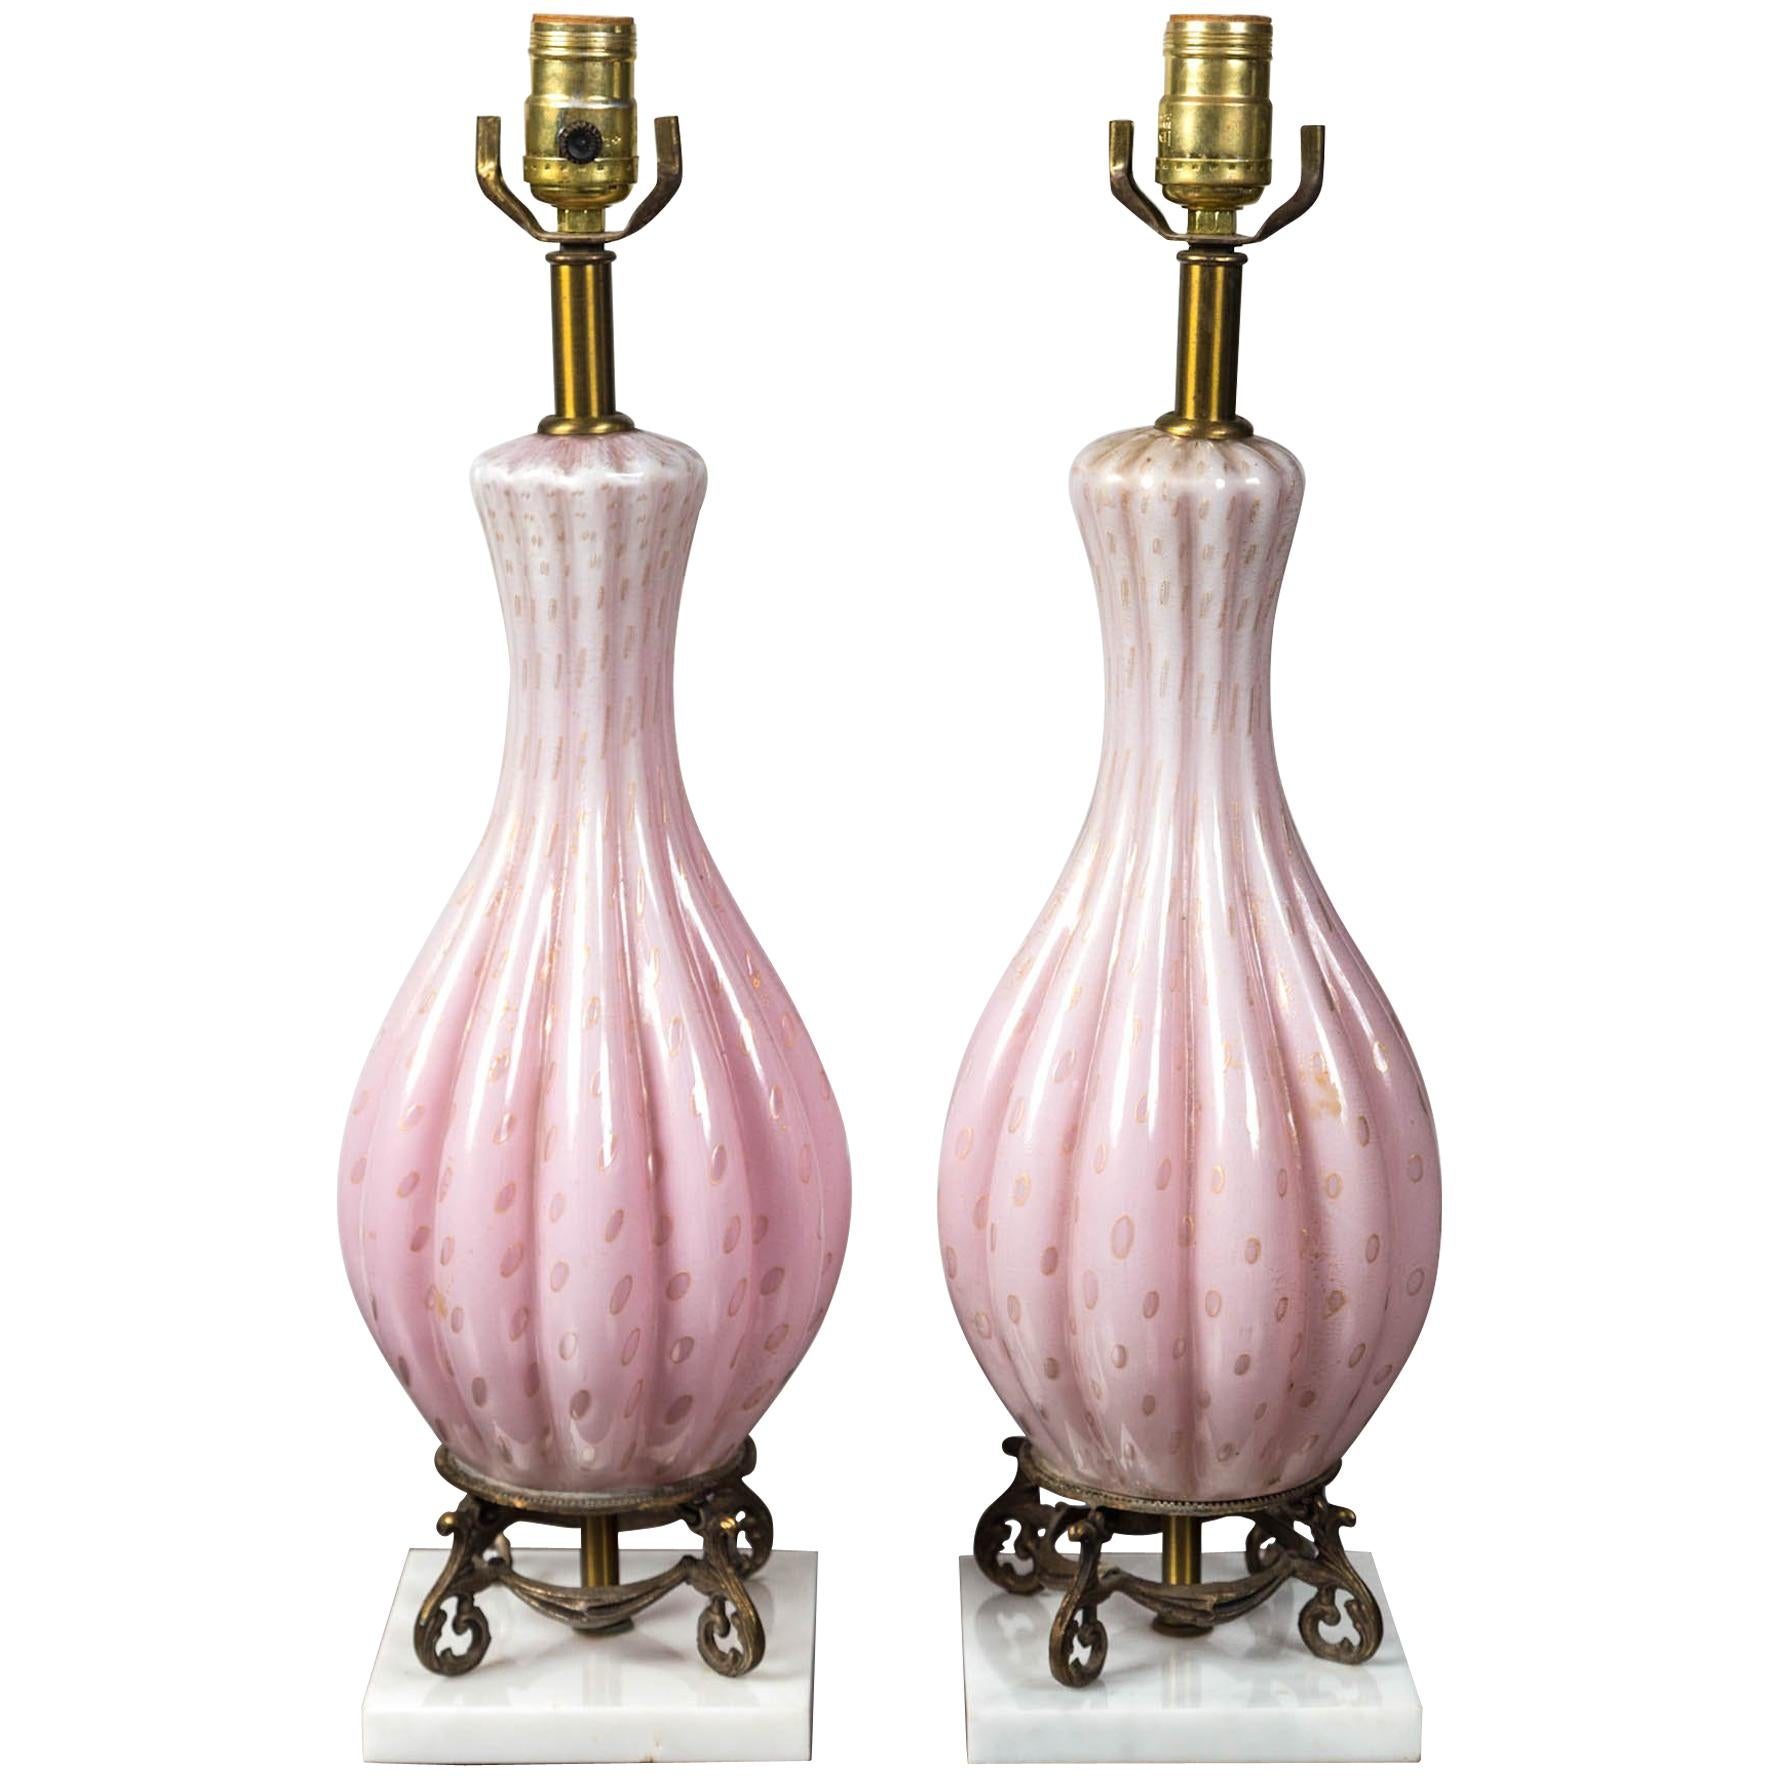 Pair of Mid-Century Modern Glass Table Lamps